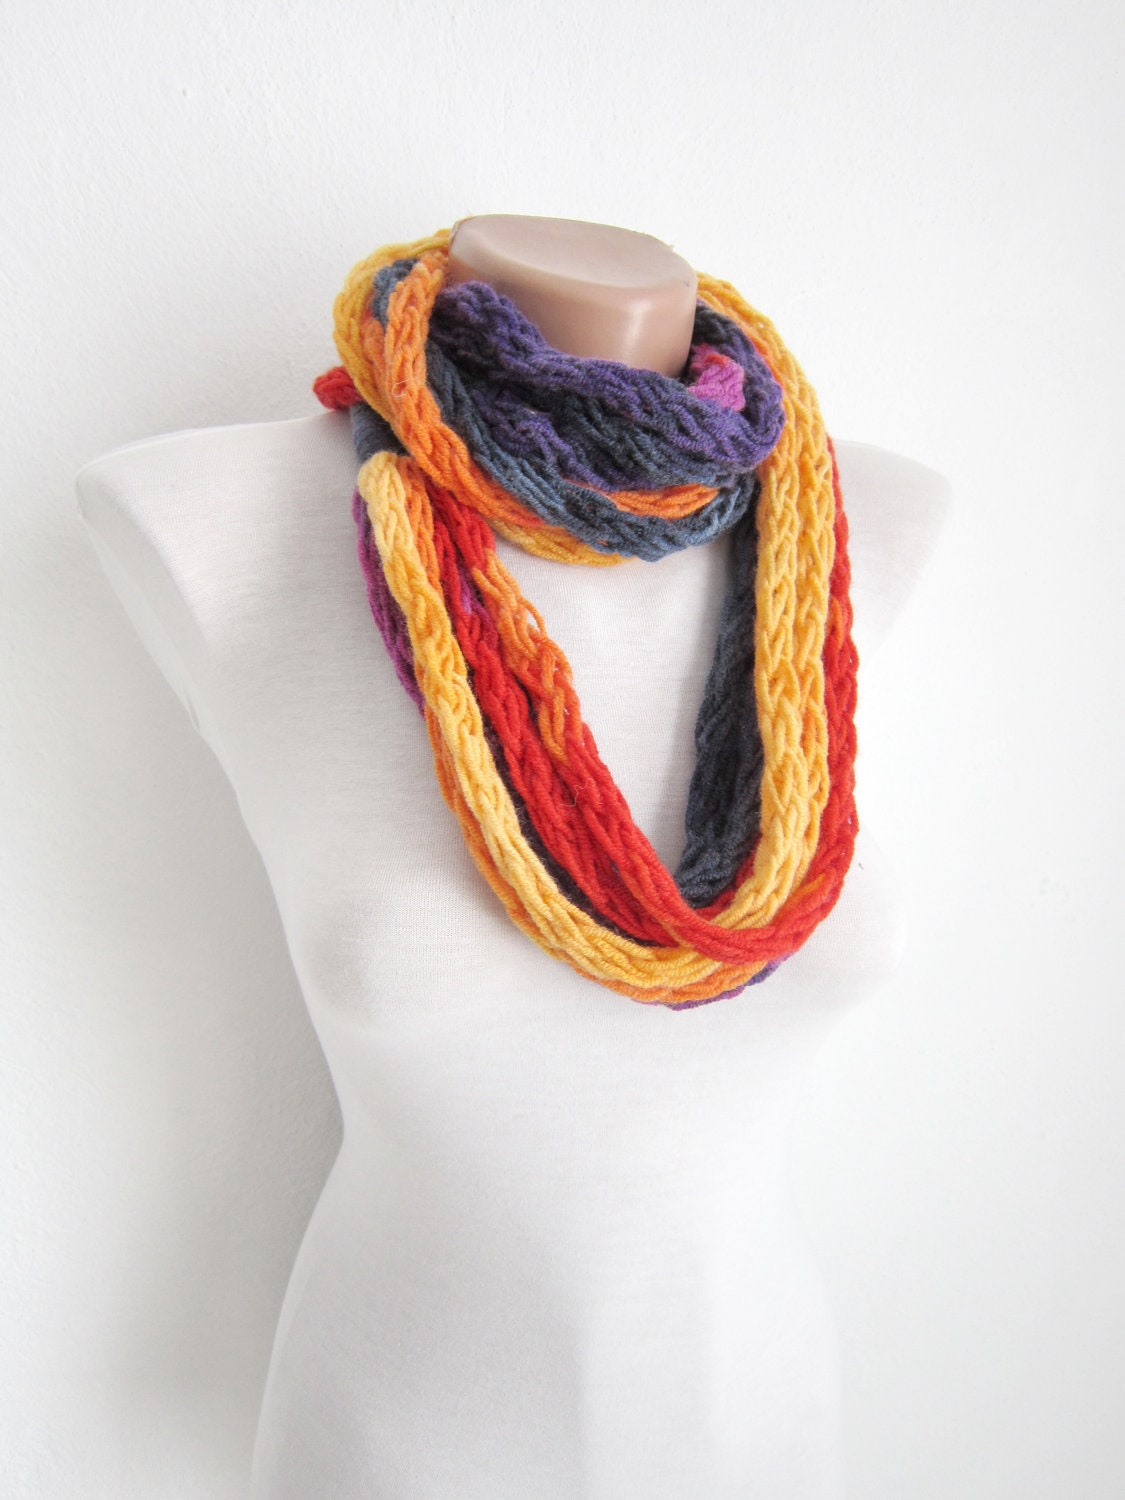 knit infinity scarffinger knitting scarfmulticolor by